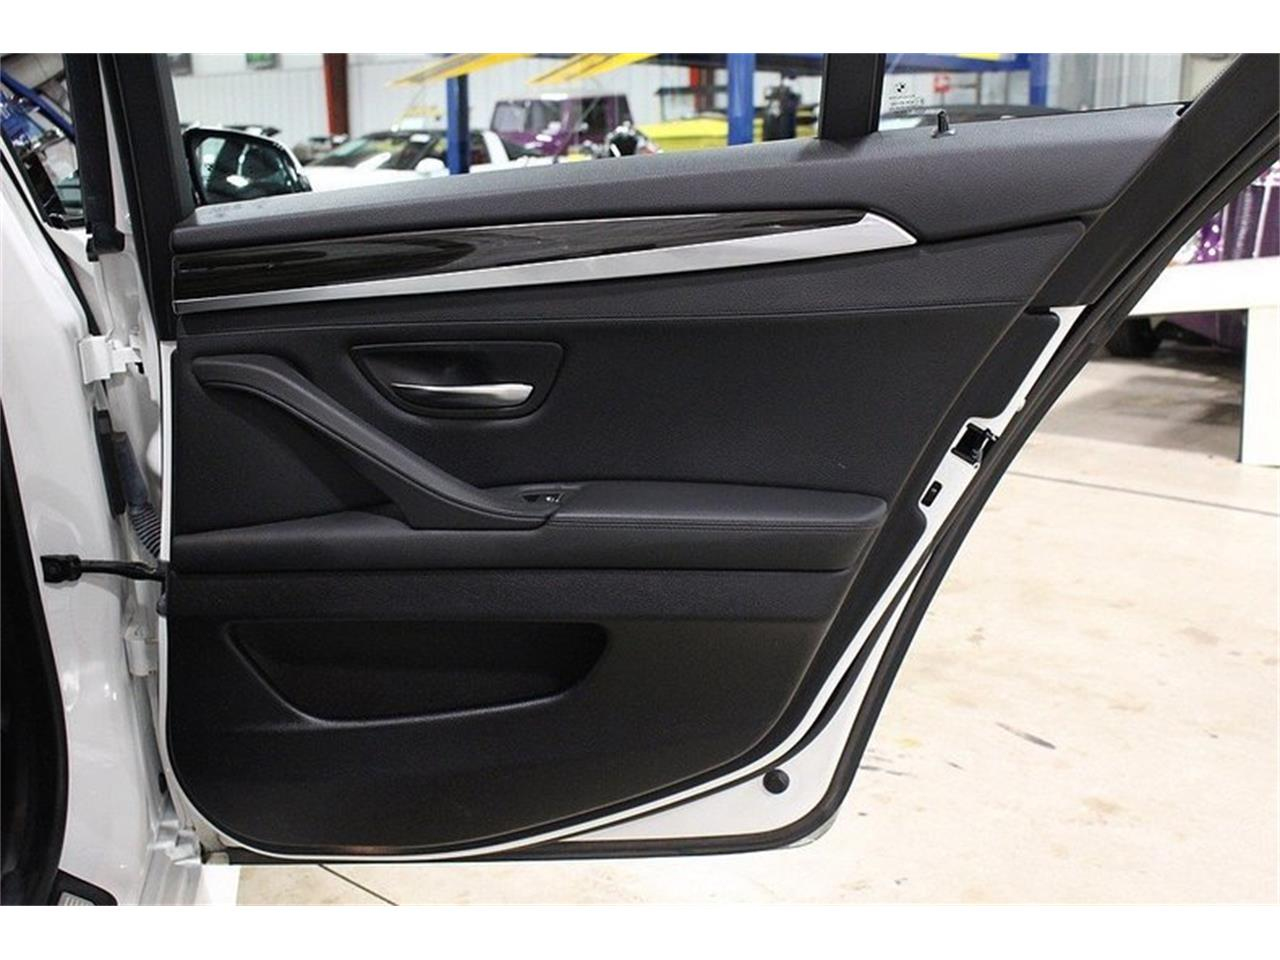 Large Picture of '14 BMW 5 Series located in Michigan Offered by GR Auto Gallery - M41M